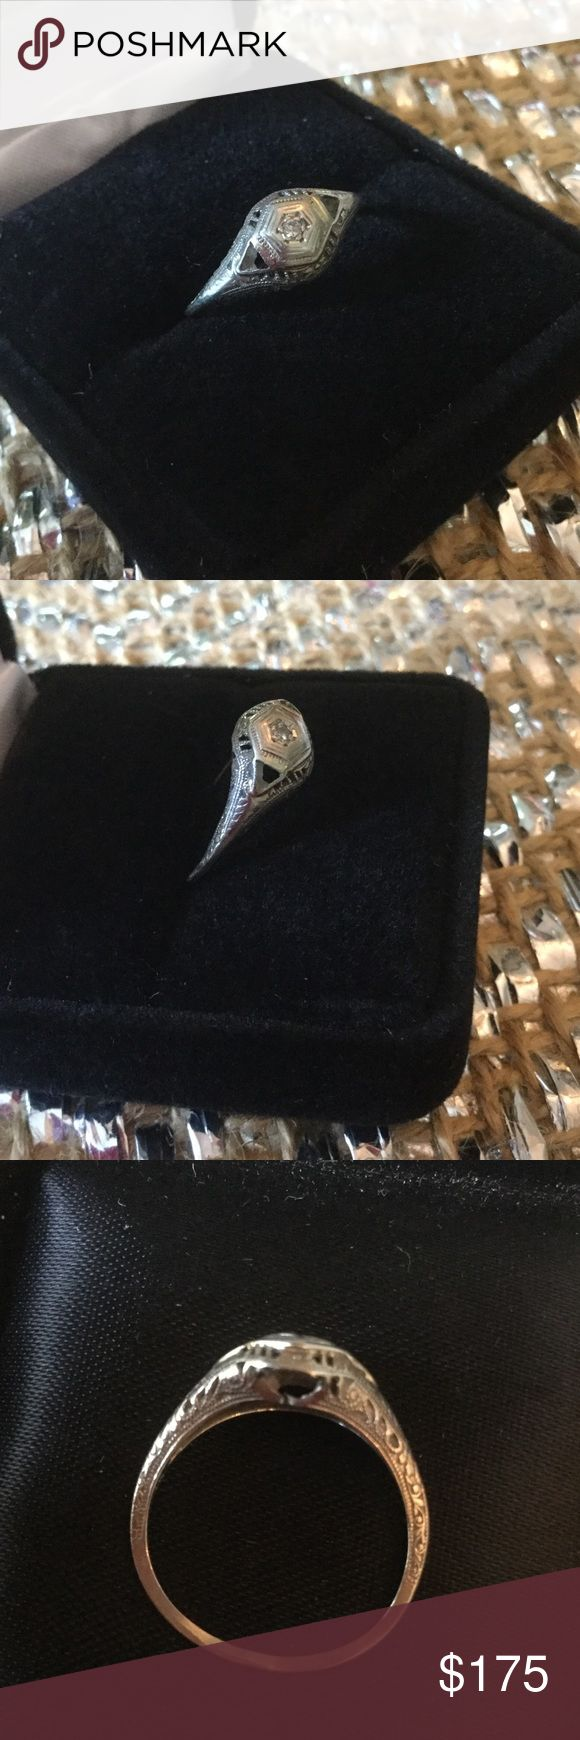 Genuine 18K Gold Antique Diamond Ring💎 Wow !  Genuine 18K GOLD !  Rare find at this same awesome estate sale.  This ring is over 100 years old,  dainty workmanship, genuine tiny diamond.  This is priced real low and is worth more for just the gold !  Condition shows wear,  priced low for that. Antique Estate Sale Jewelry Rings